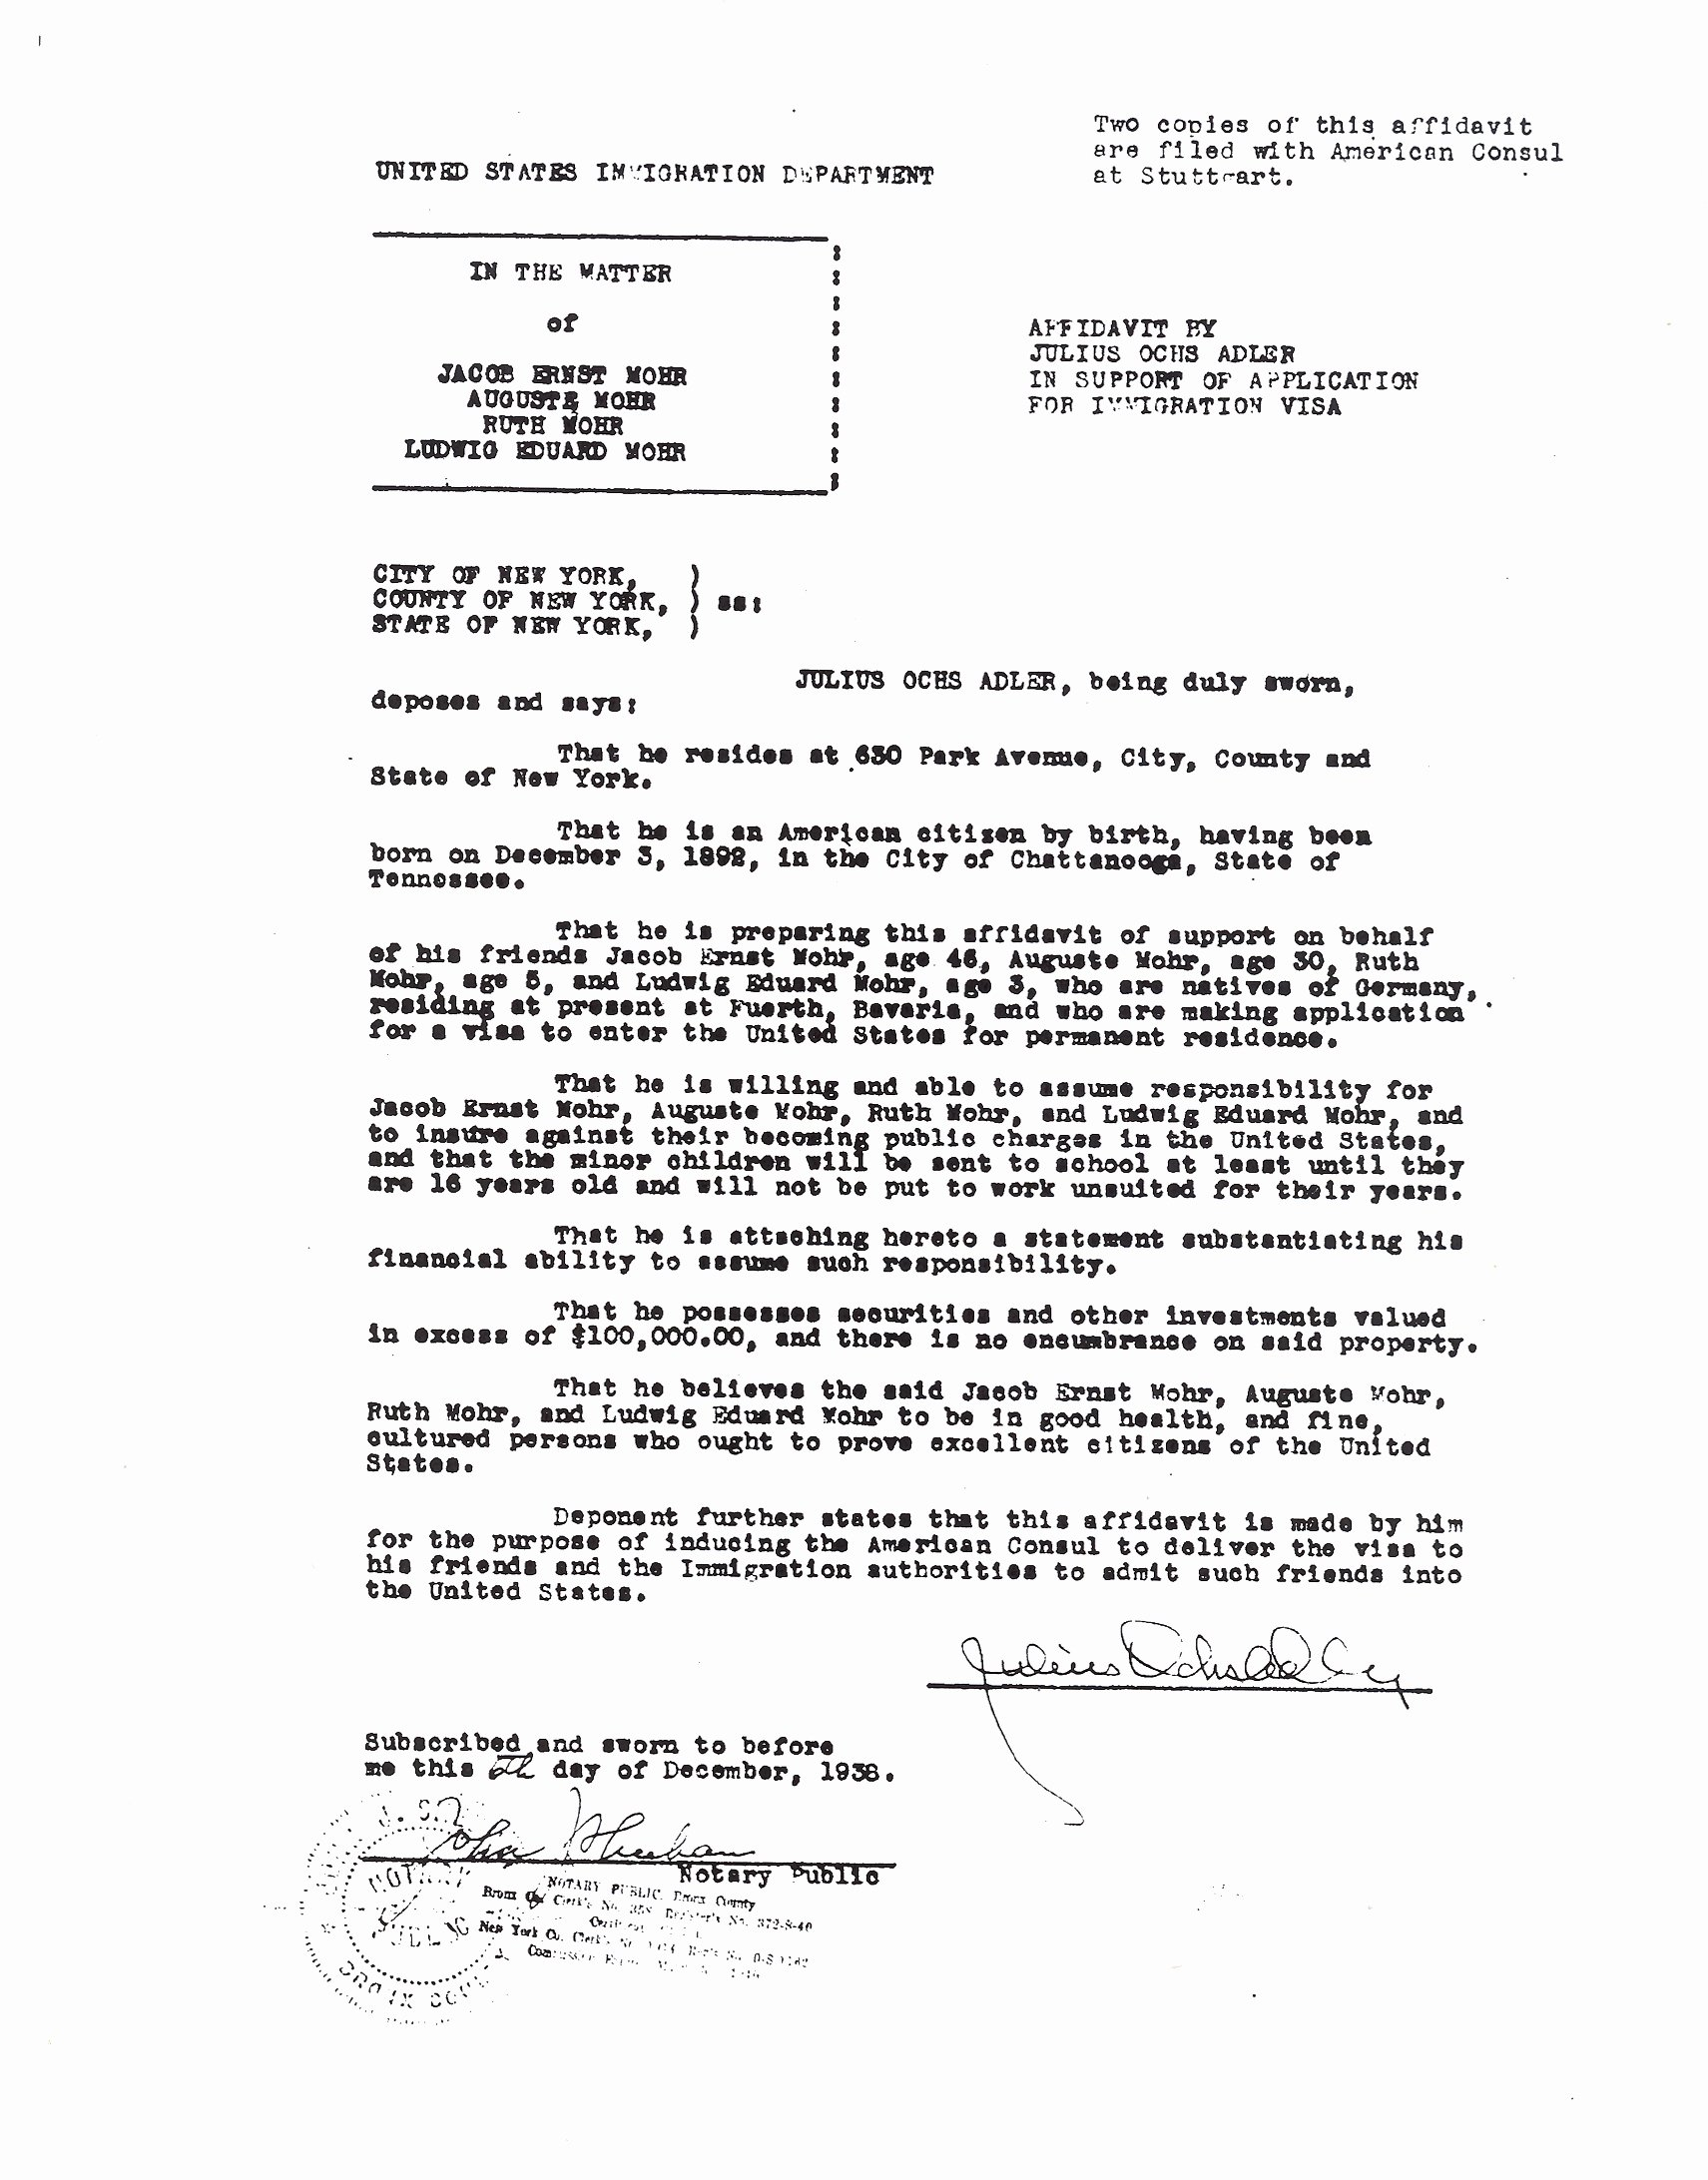 Sample Letter Of Affidavit Of Support Luxury the Mohr Family Immigration and the New York Times